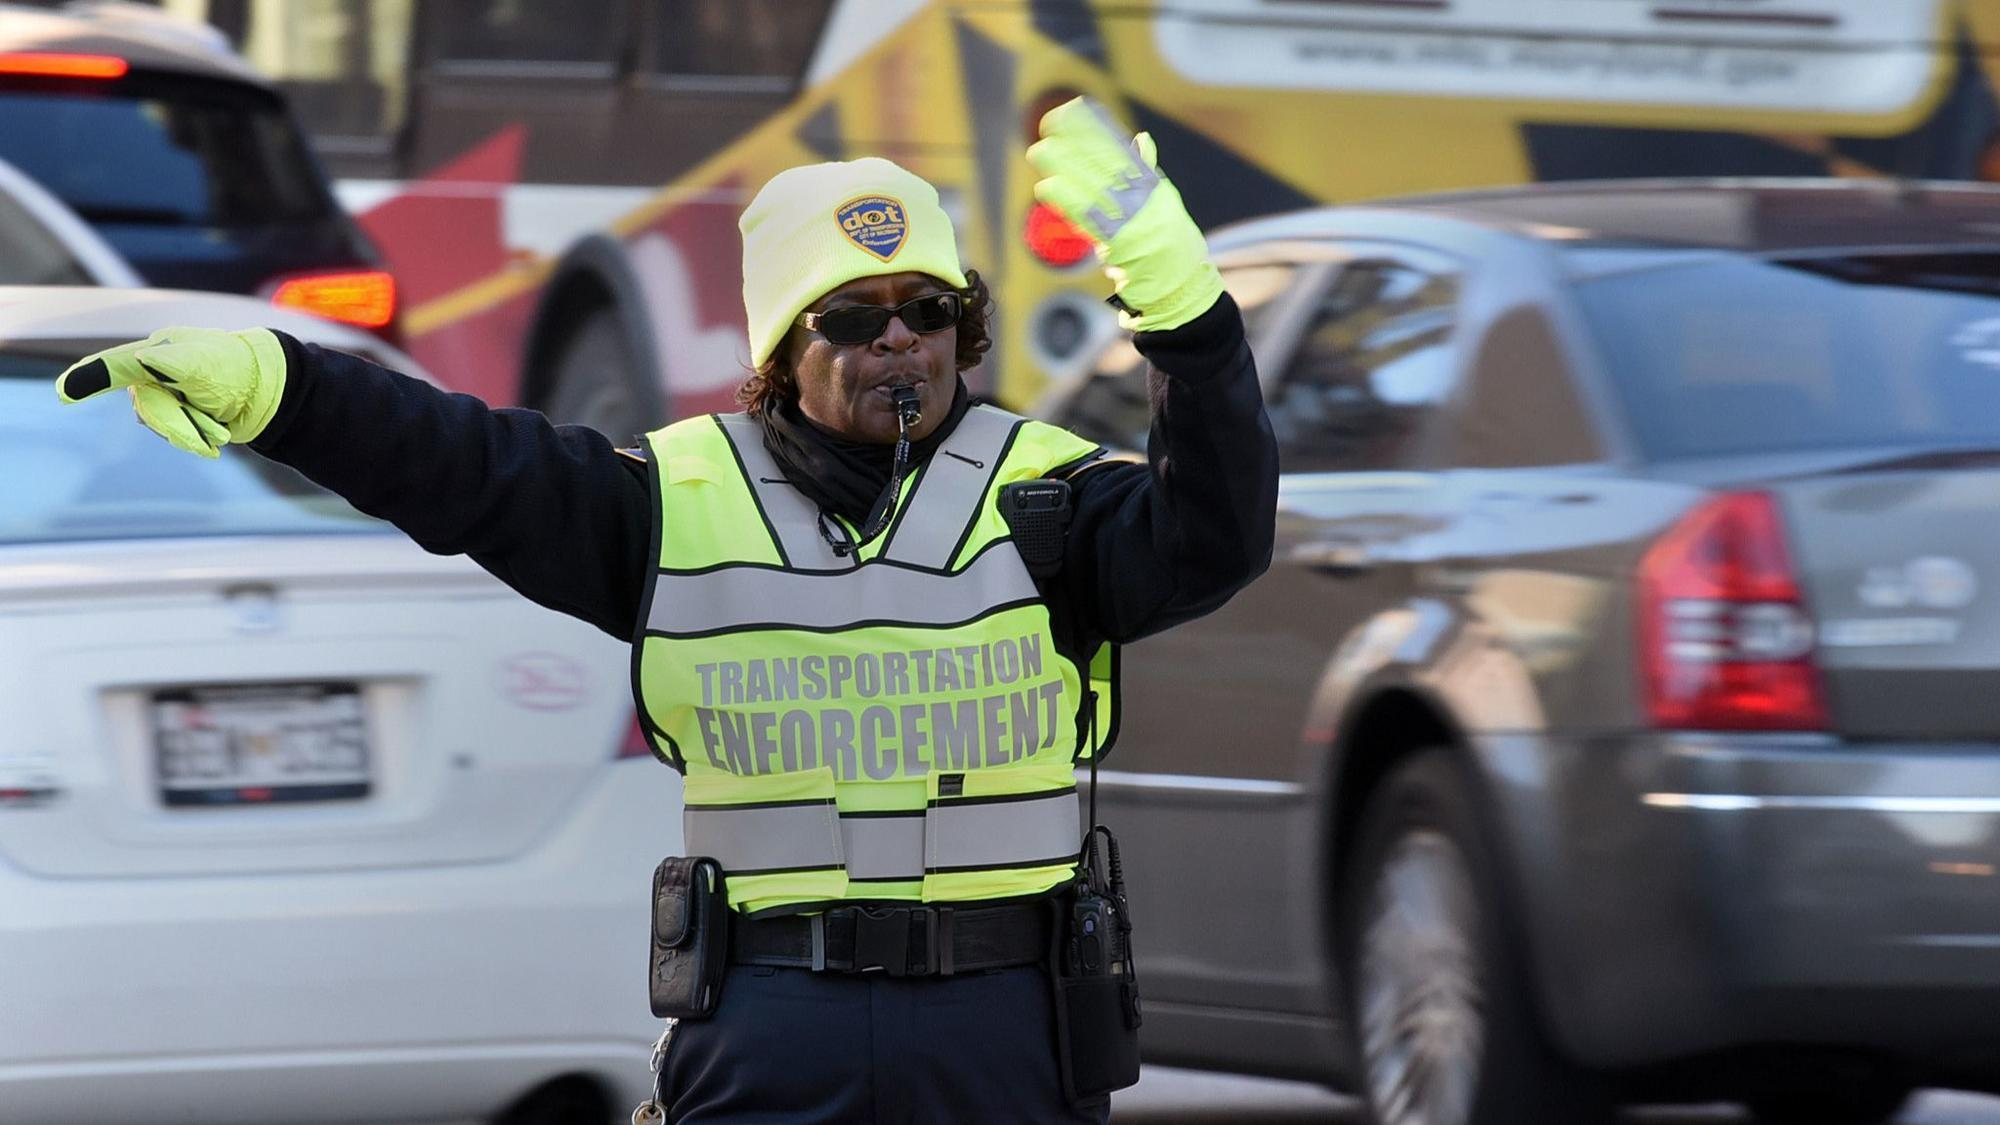 Baltimore To Begin Fining Drivers 90 For Blocking Traffic At Intersections